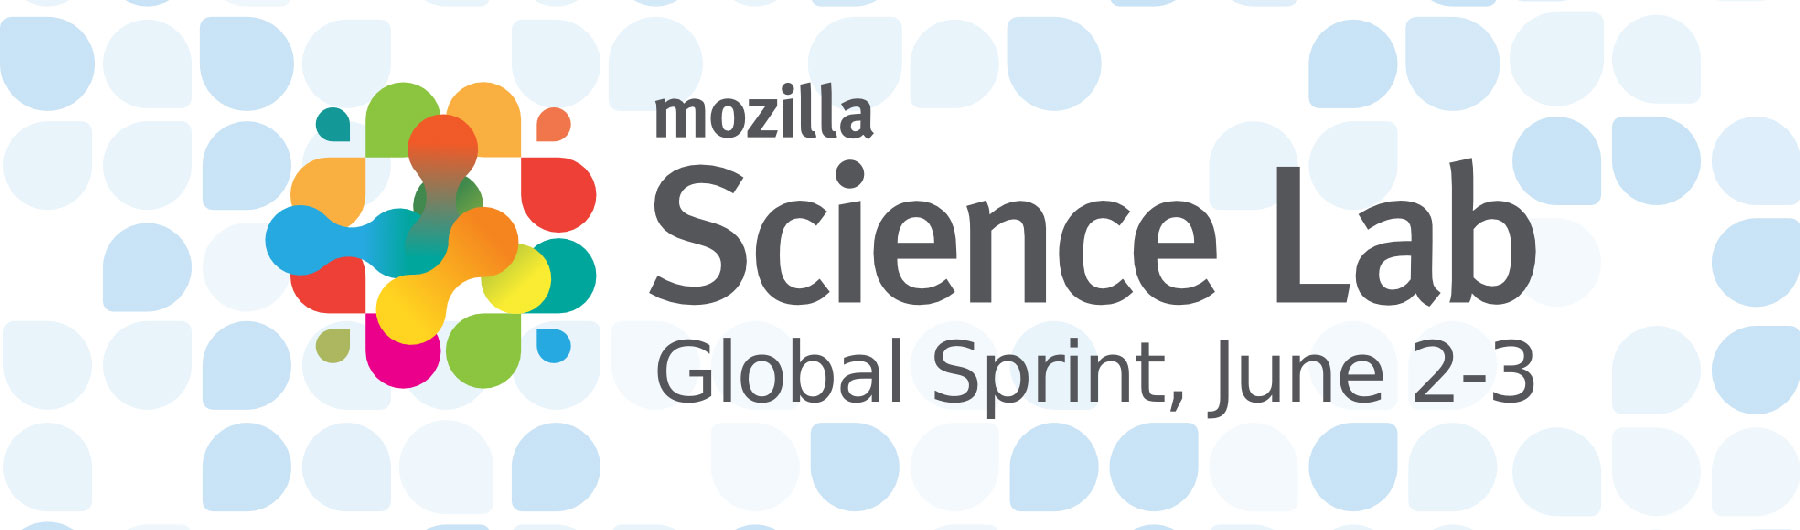 Mozilla Science Global Sprint 2016, Amsterdam